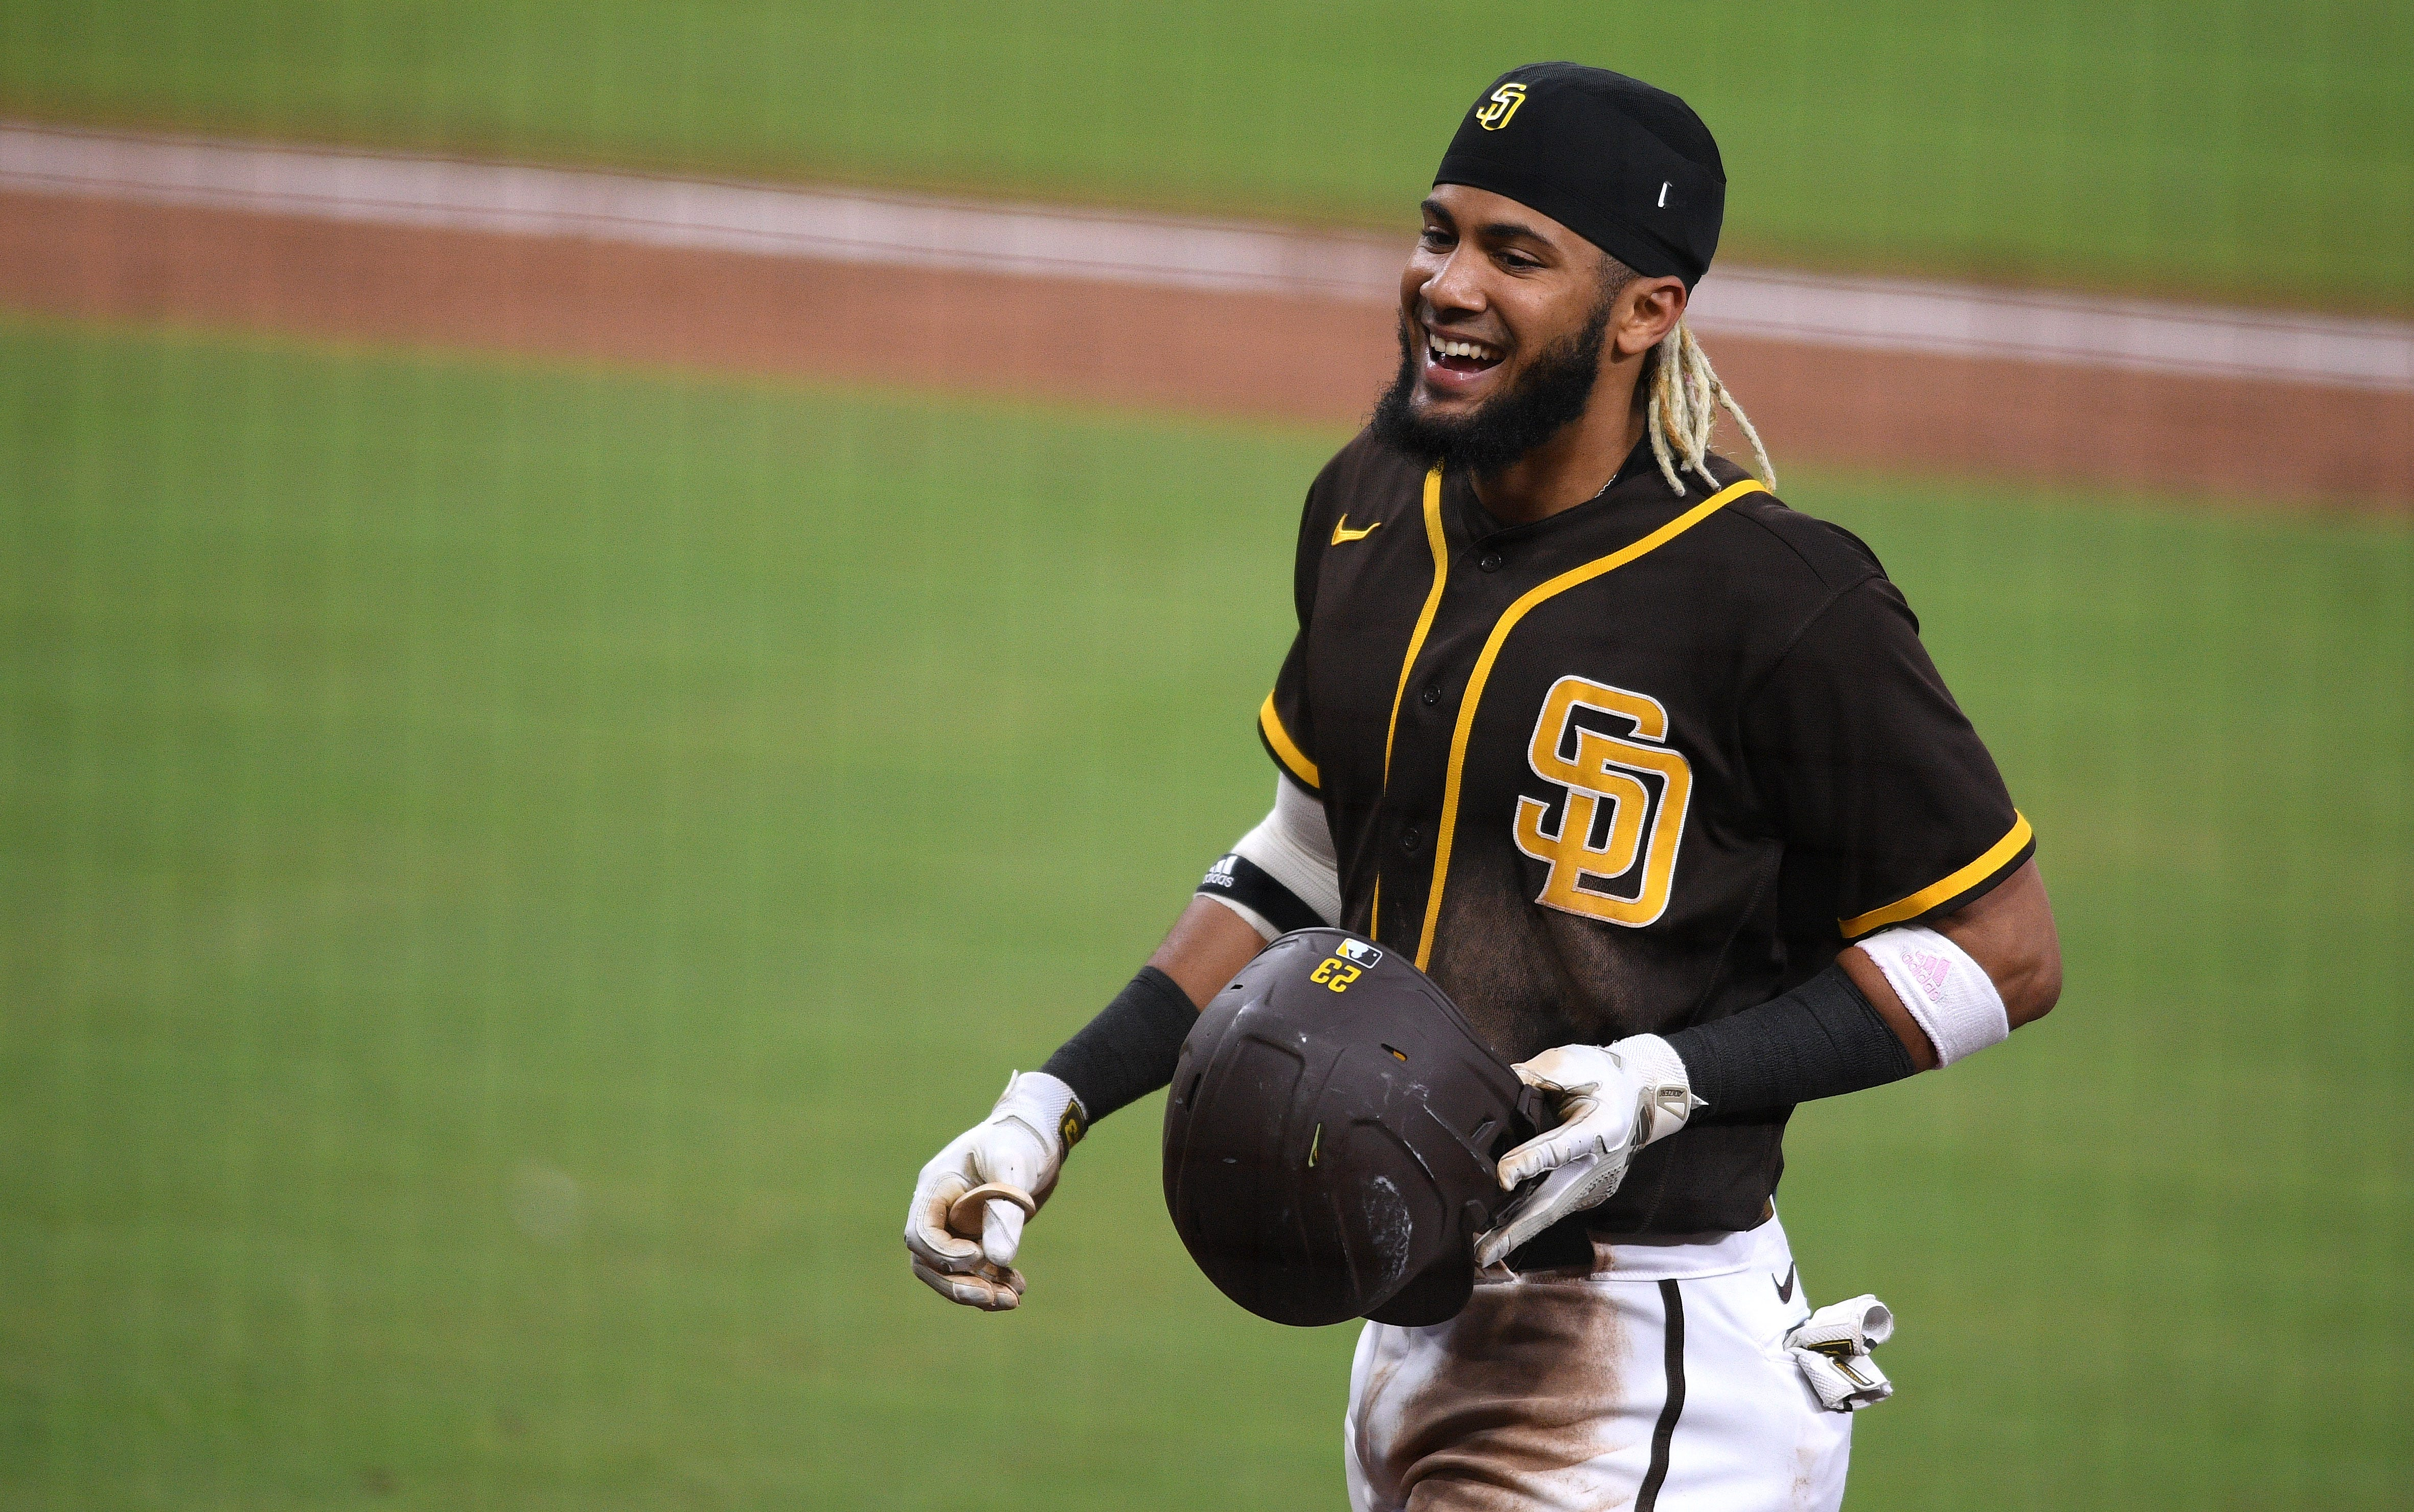 Best rivalry in baseball? What to expect from Dodgers and Padres in 2021